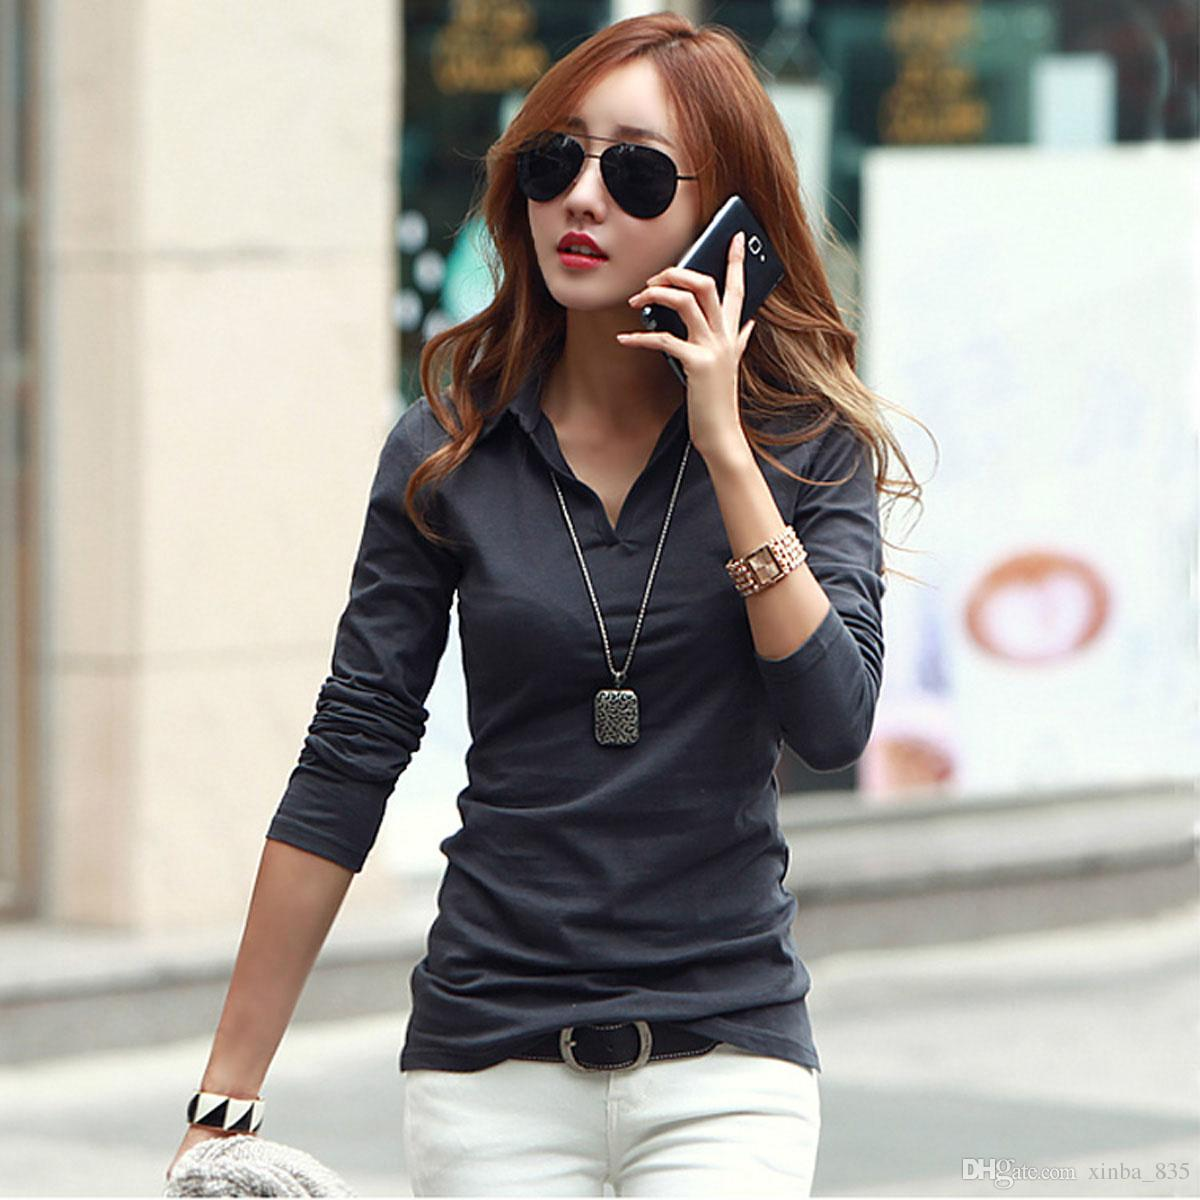 2018 Polo Shirt Women Wife Spring And Summer New Korean Pure Color Cotton Short Sleeved T Tops Tumblr V Collar WomenS Clothing 3005 From Xinba 835